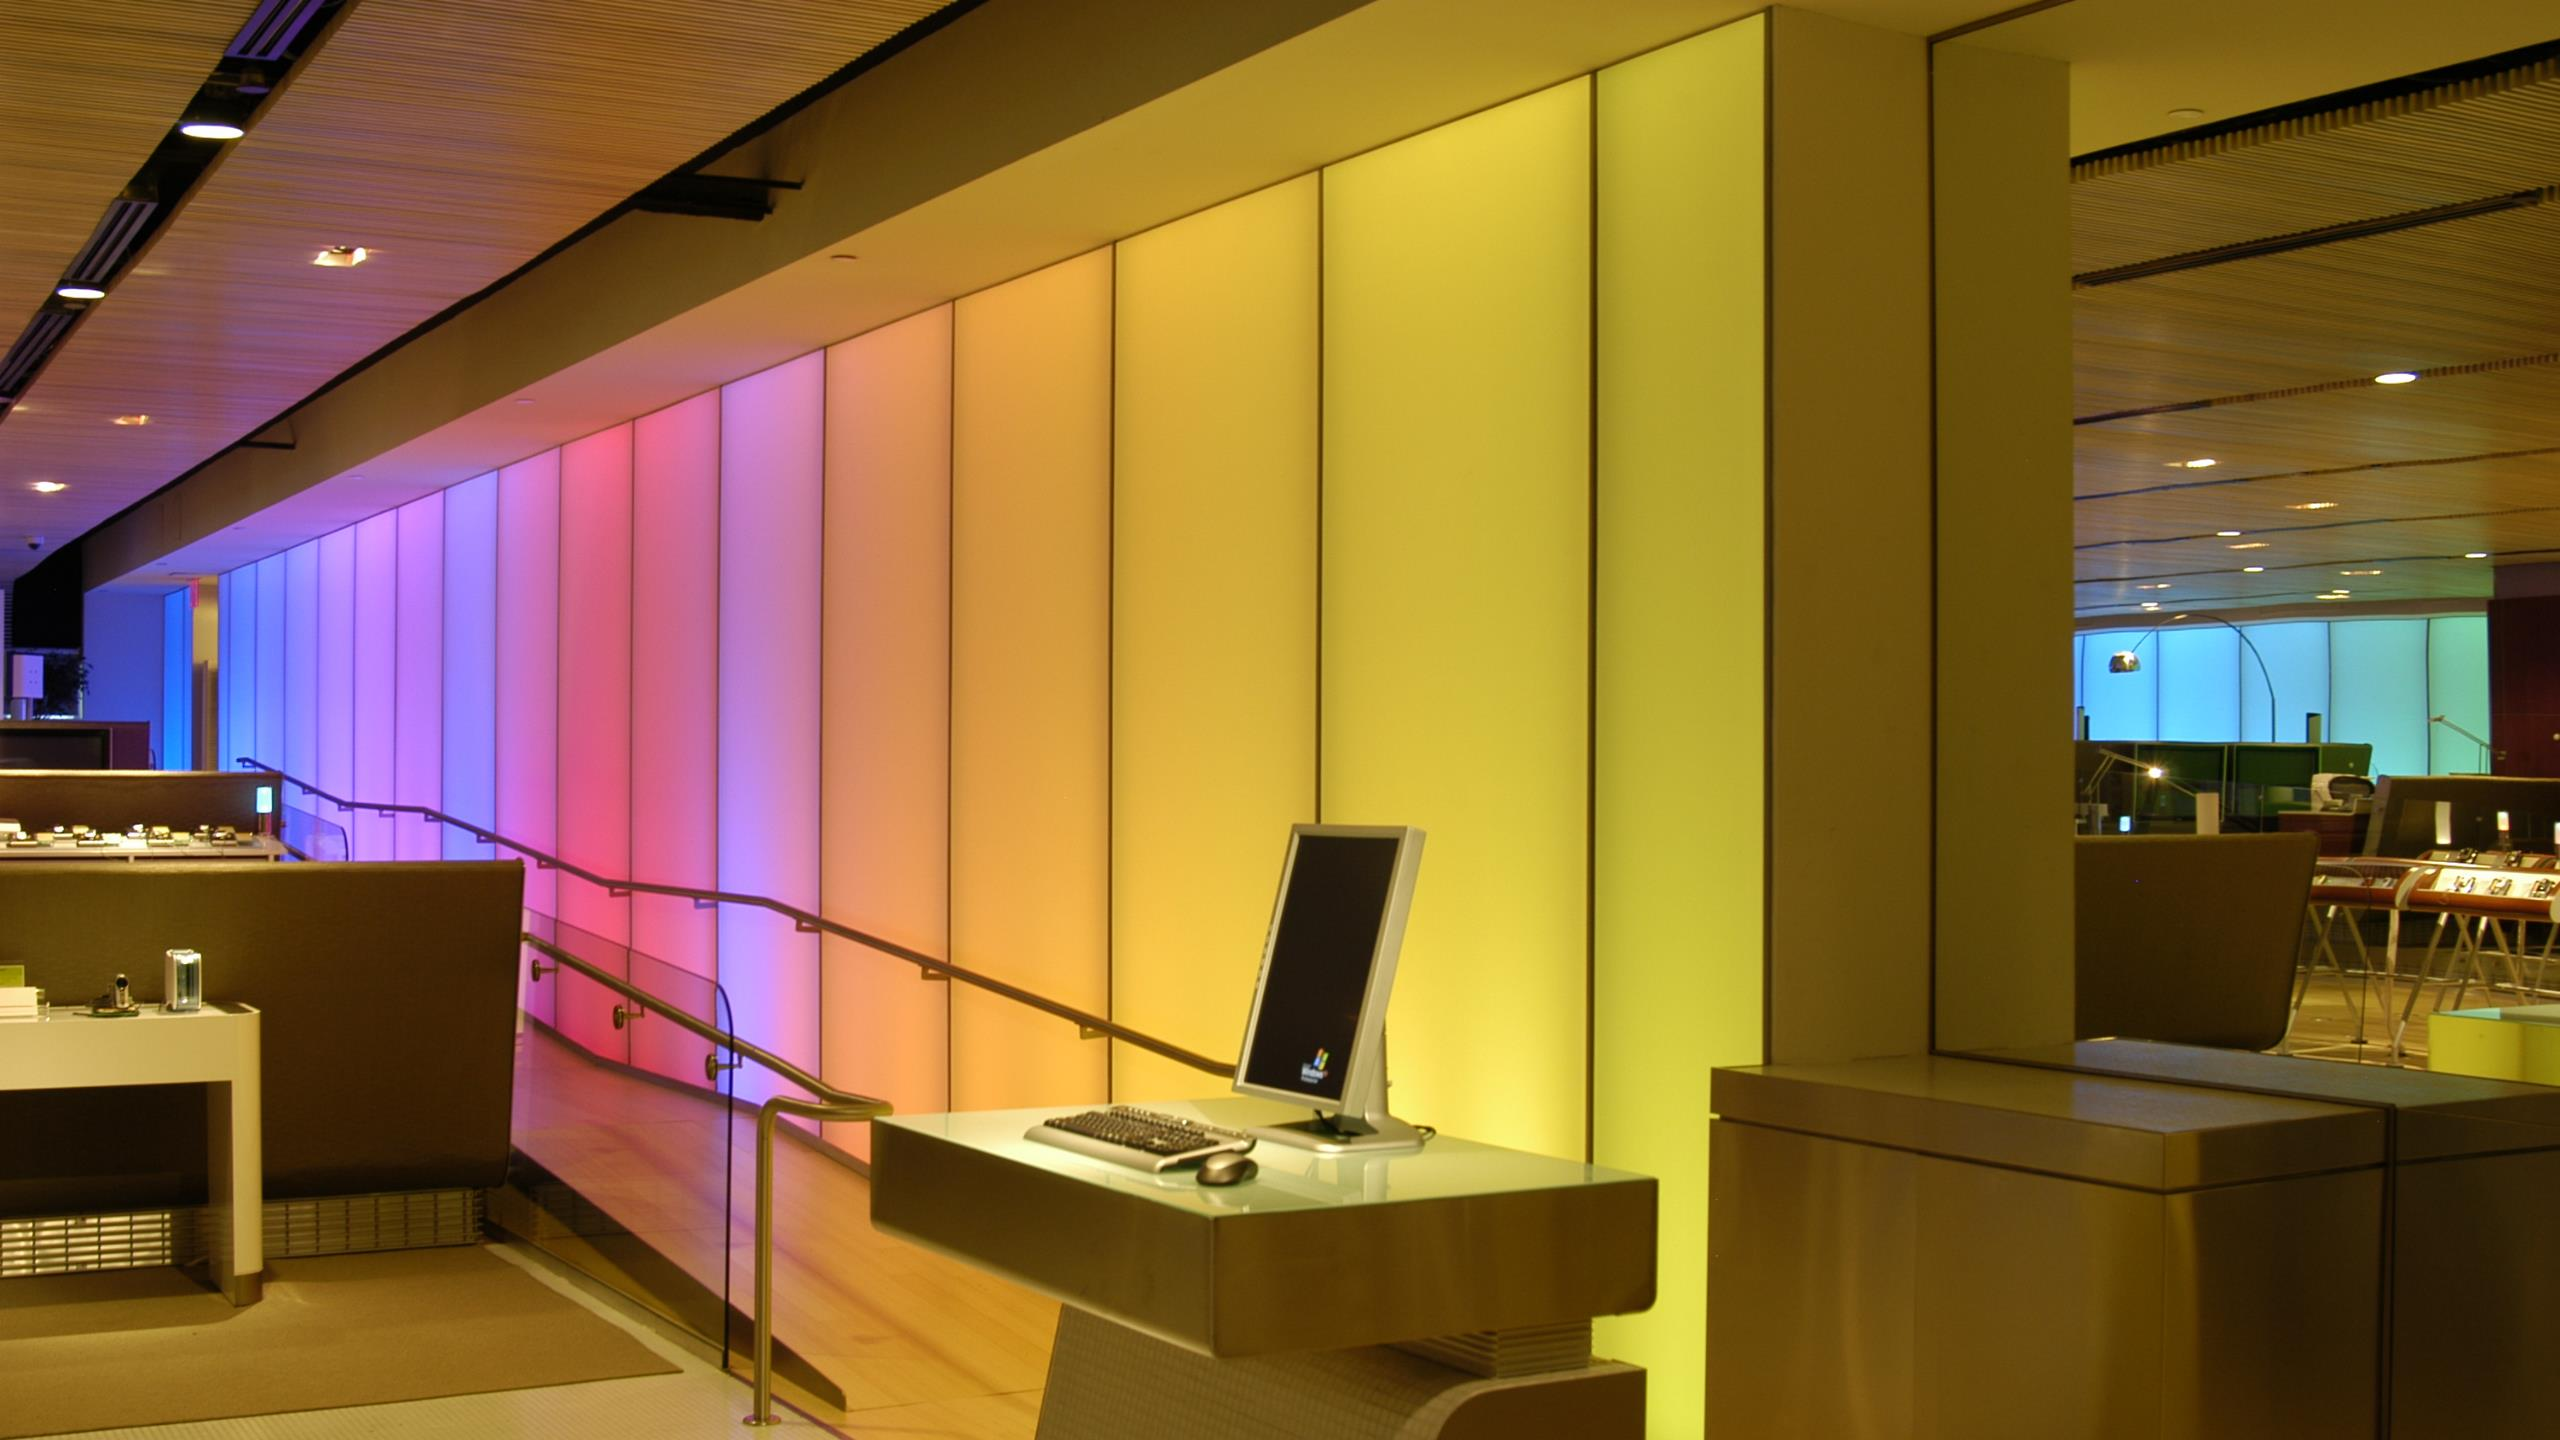 Samsung HQ - Newmat wall with light system